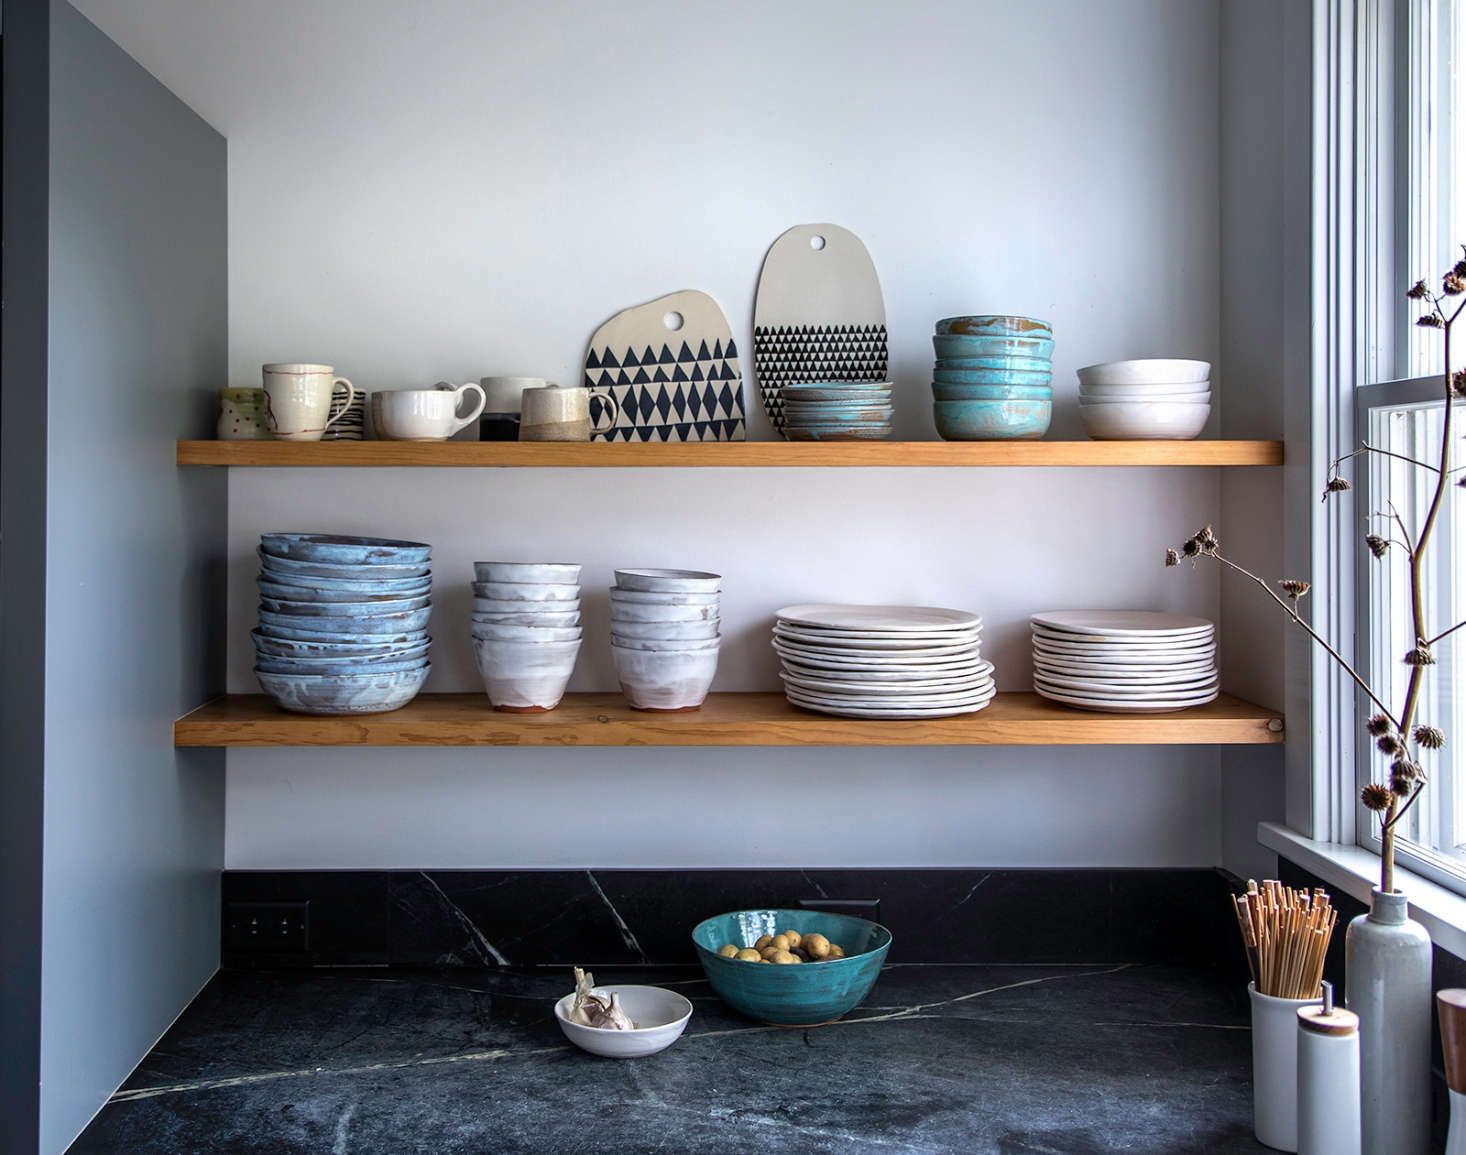 I find the patina beautiful in this kitchen, less so in my own. Photograph by Justine Hand, from Kitchen of the Week: Hudson Valley Farmhouse Kitchen Reborn.